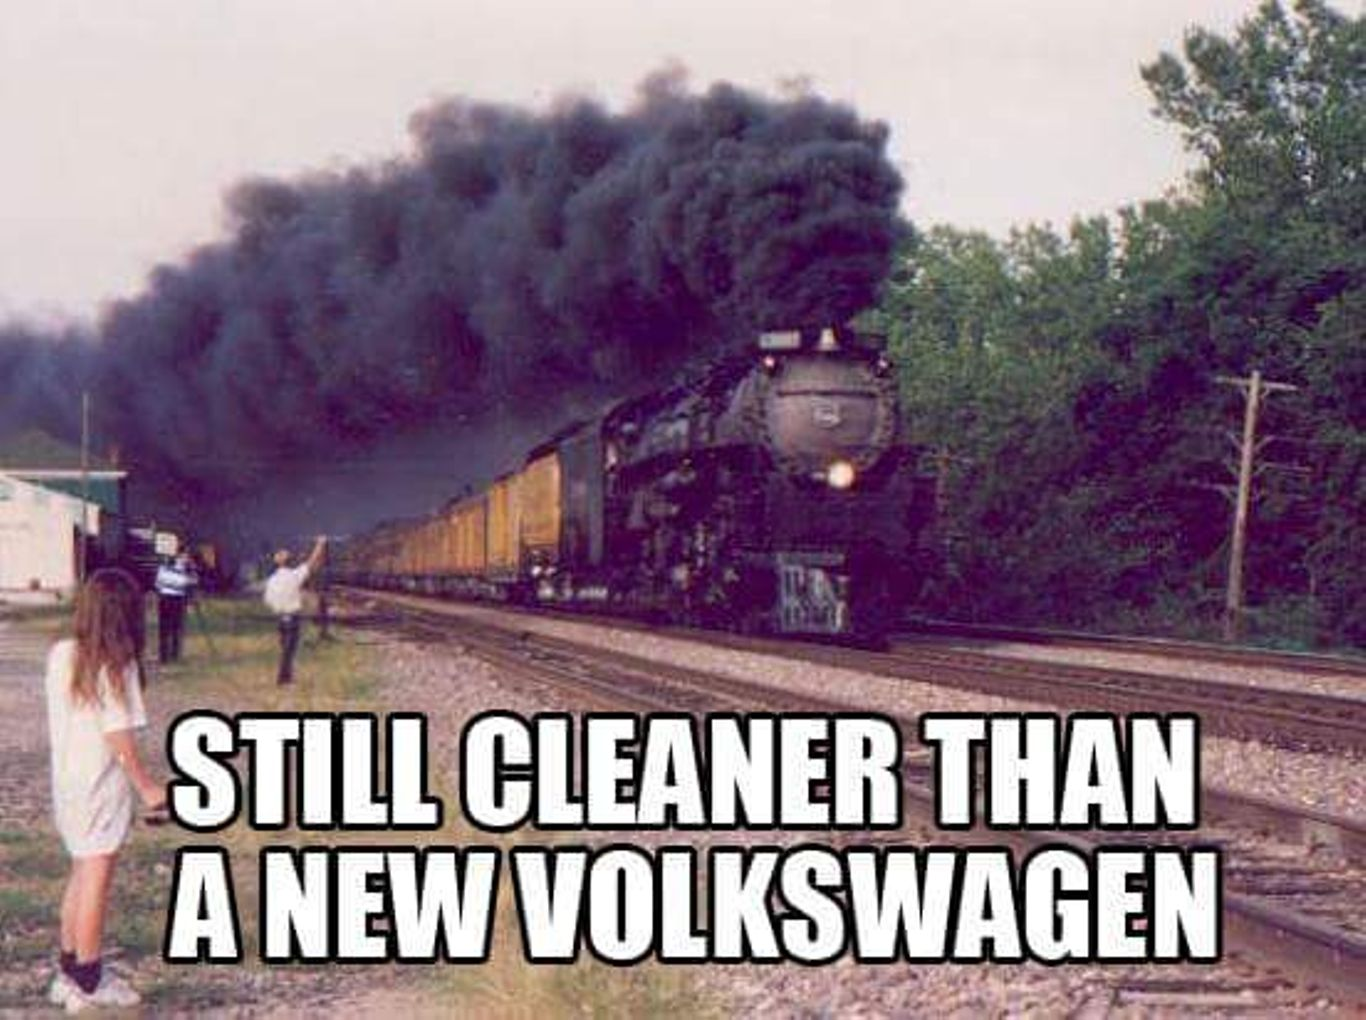 11 Hilarious Reactions To The VW Emissions Scandal - Funny